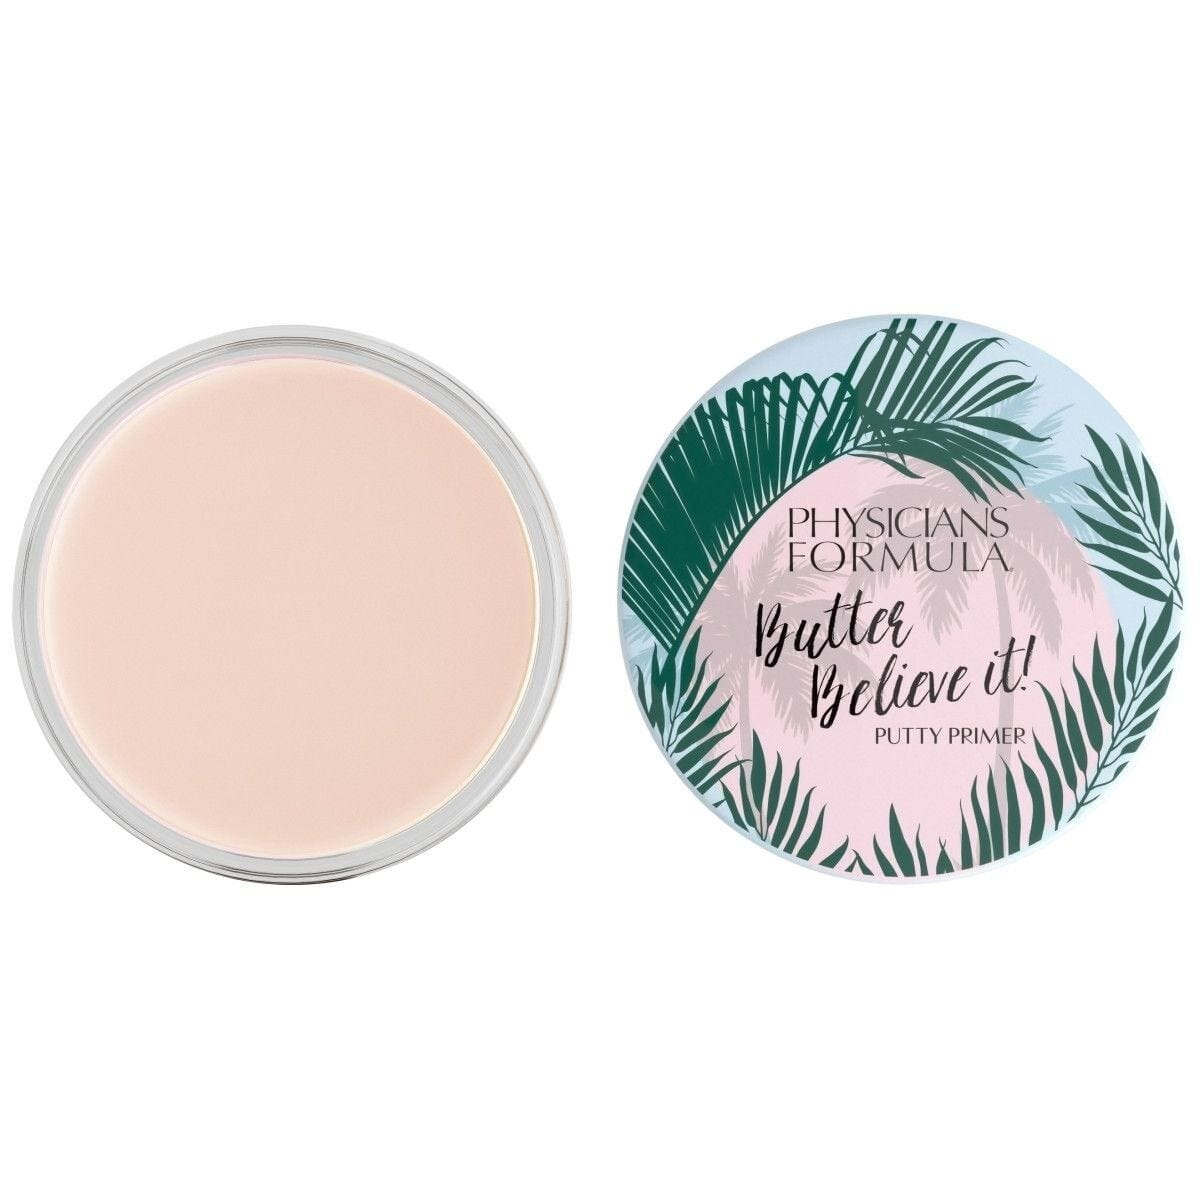 BUTTER BELIEVE IT PUTTY PRIMER PRIME - PHYSICIANS FORMULA